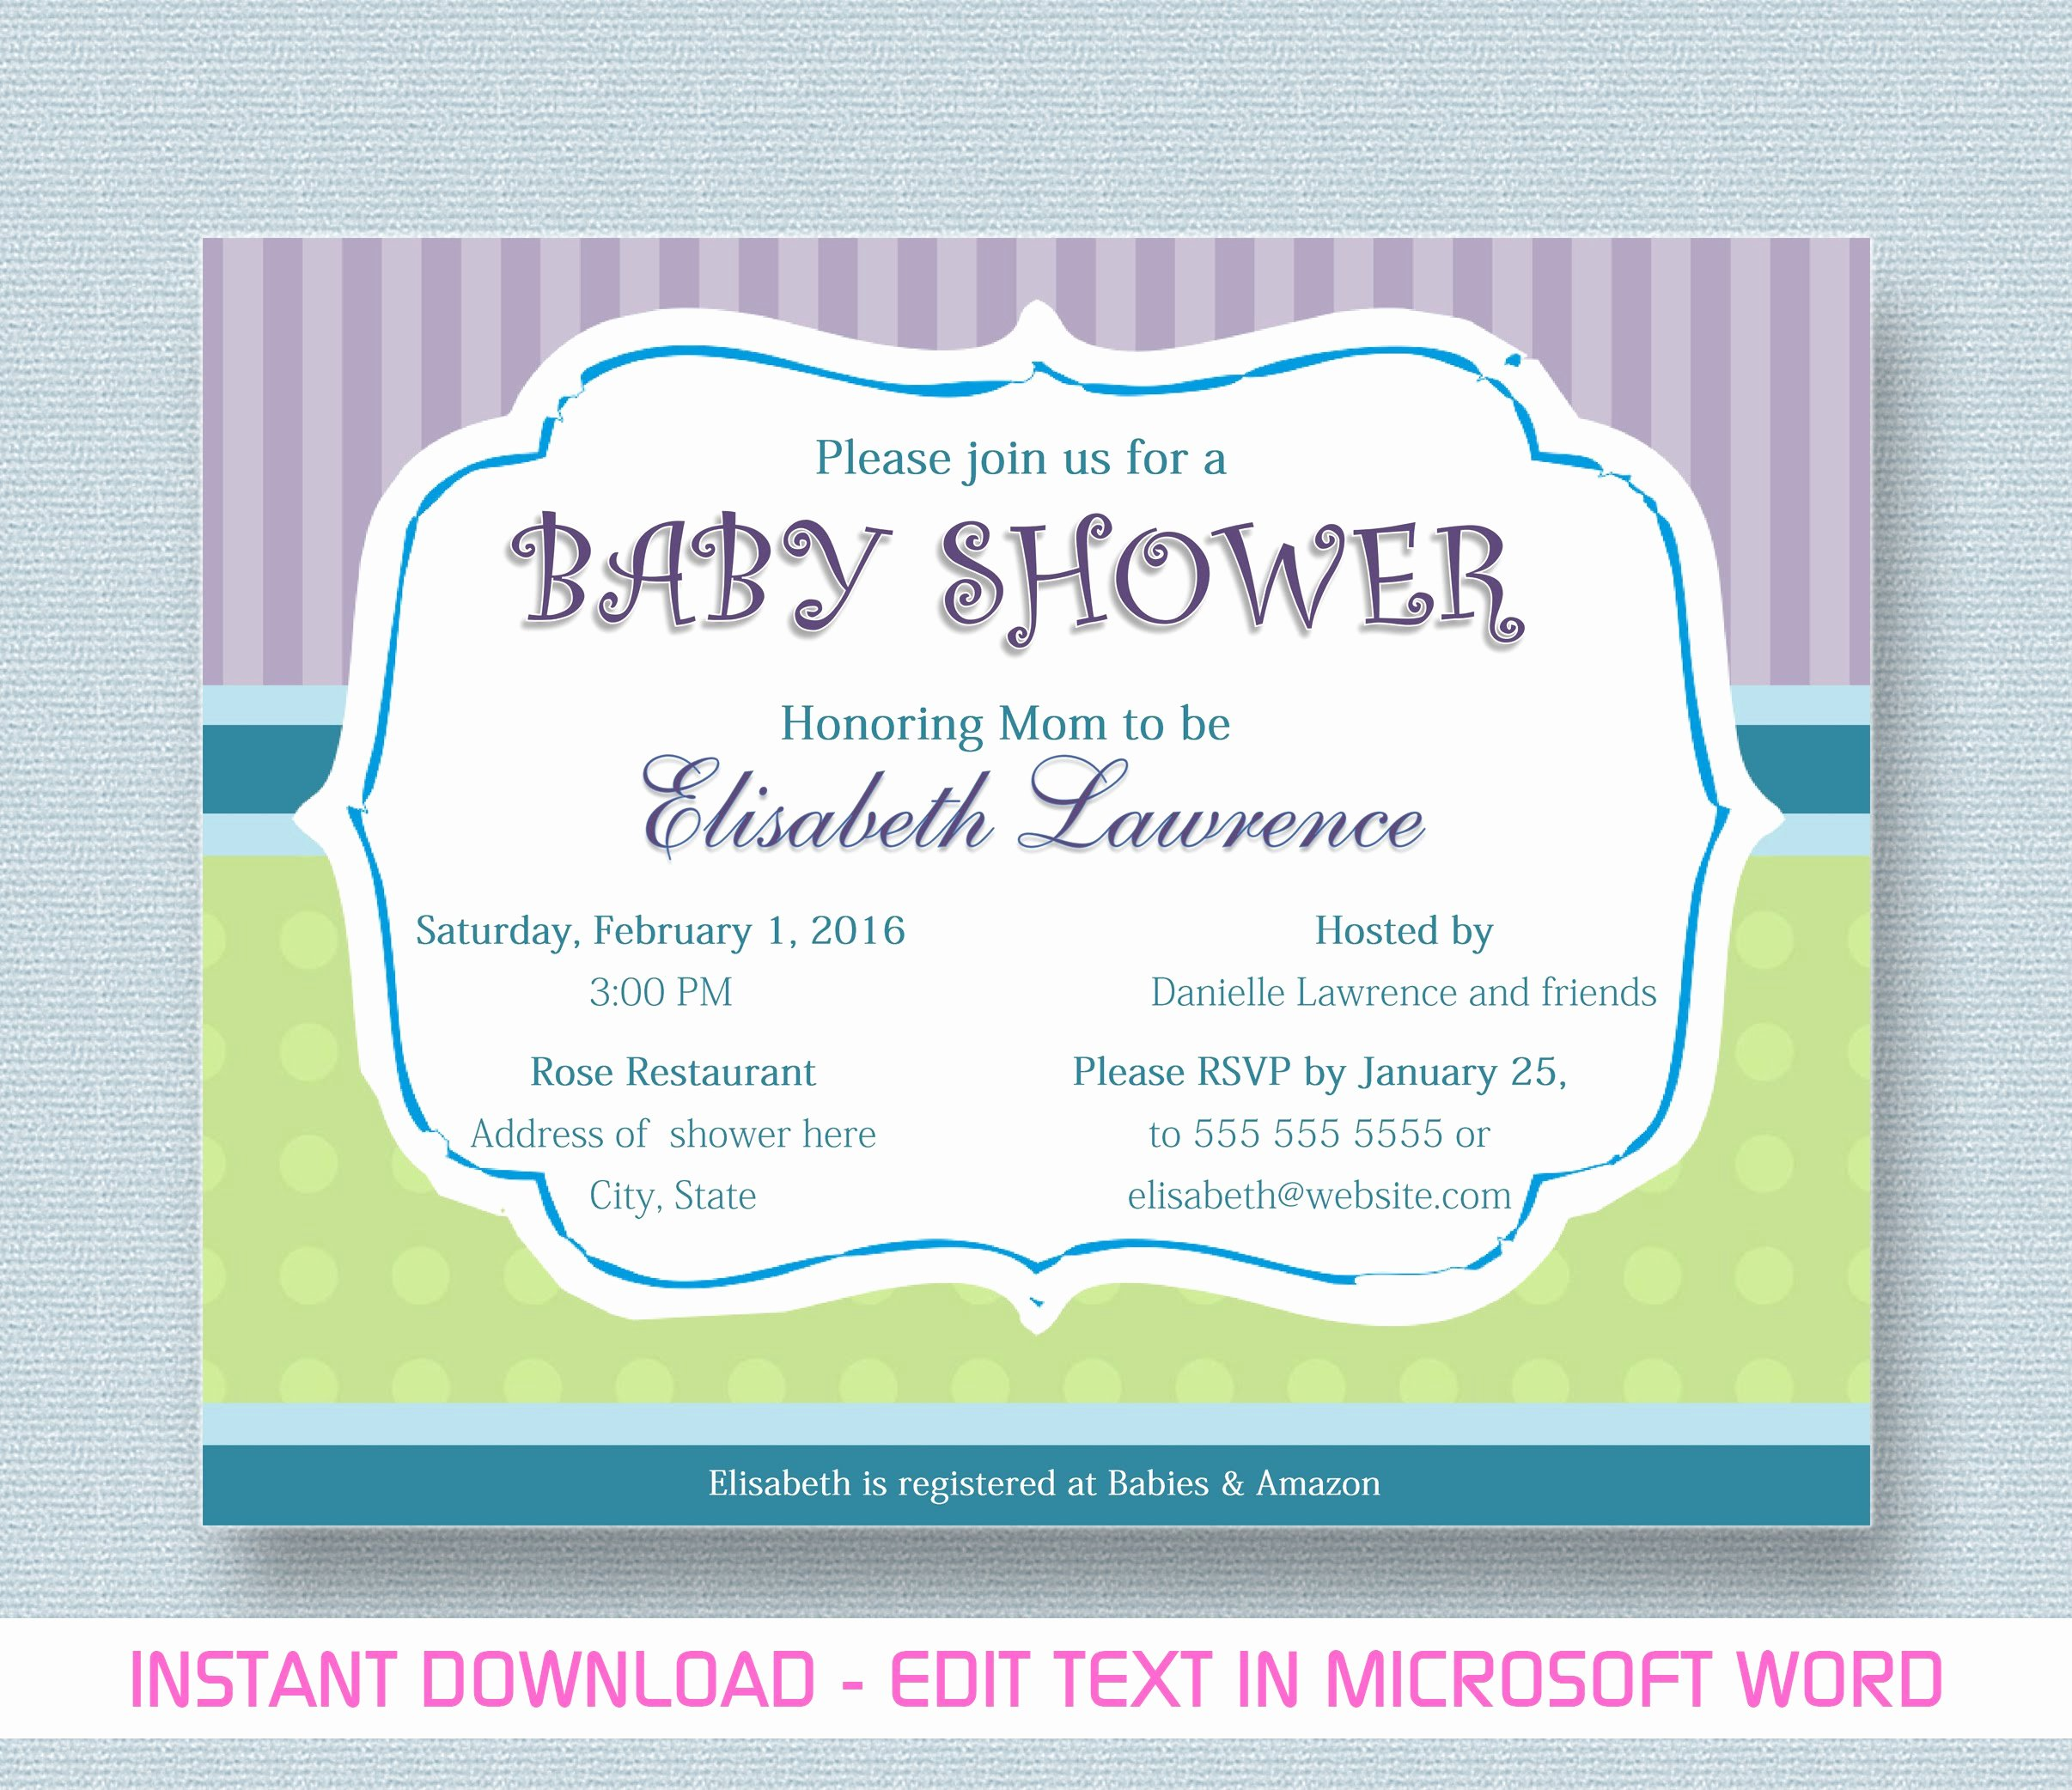 Microsoft Word Invitation Template New Baby Shower Invitation for Microsoft Word